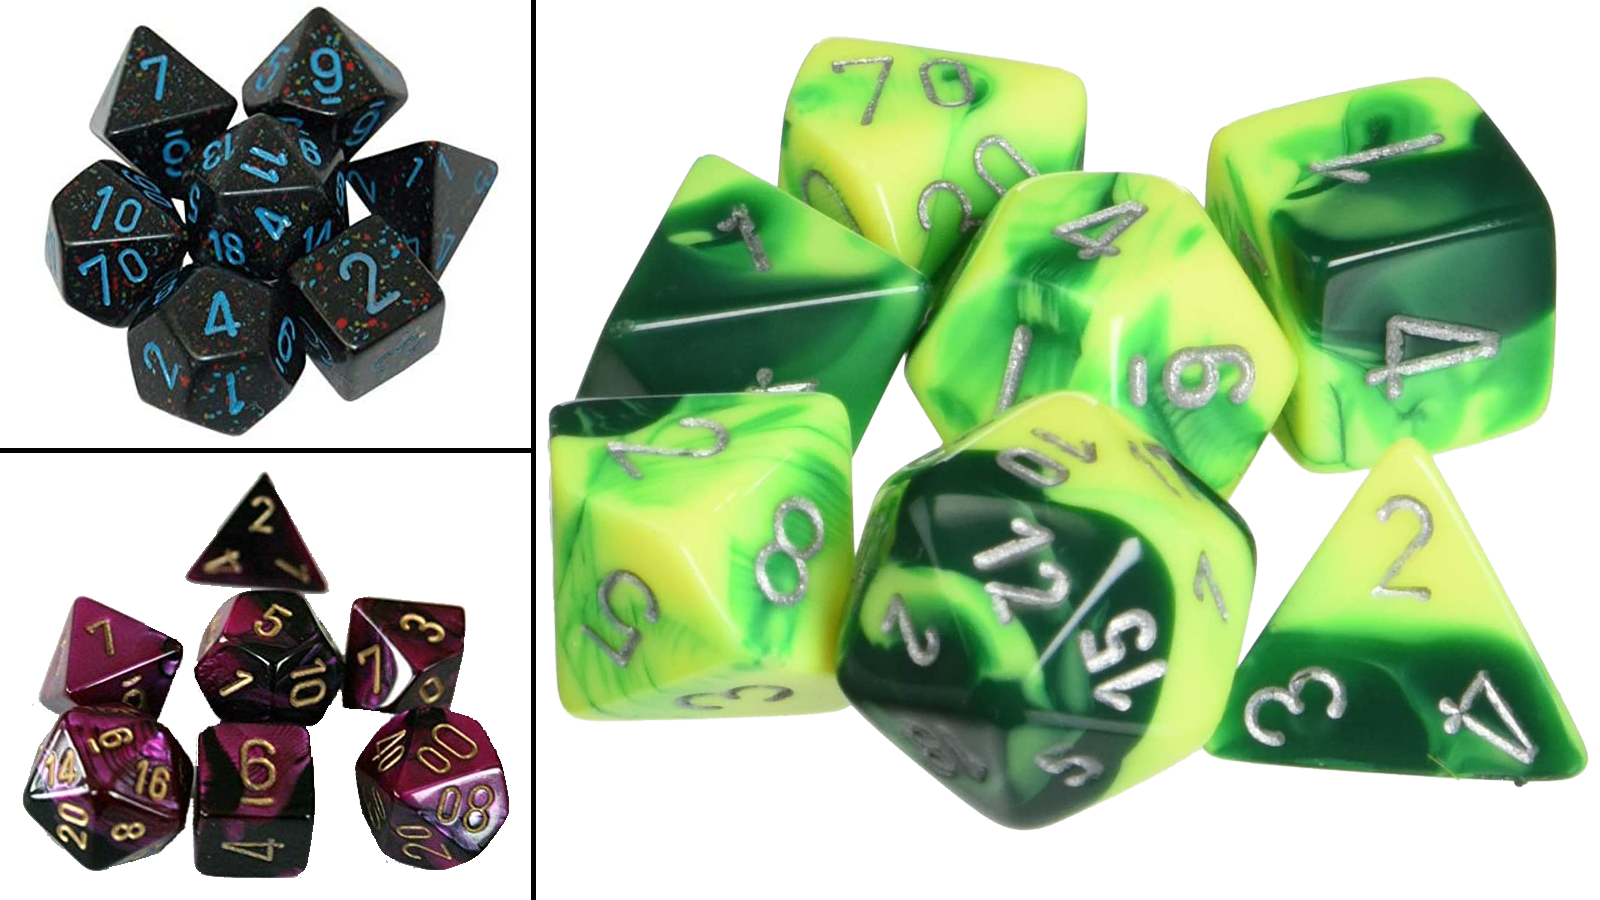 Chessex dice sets in different colors